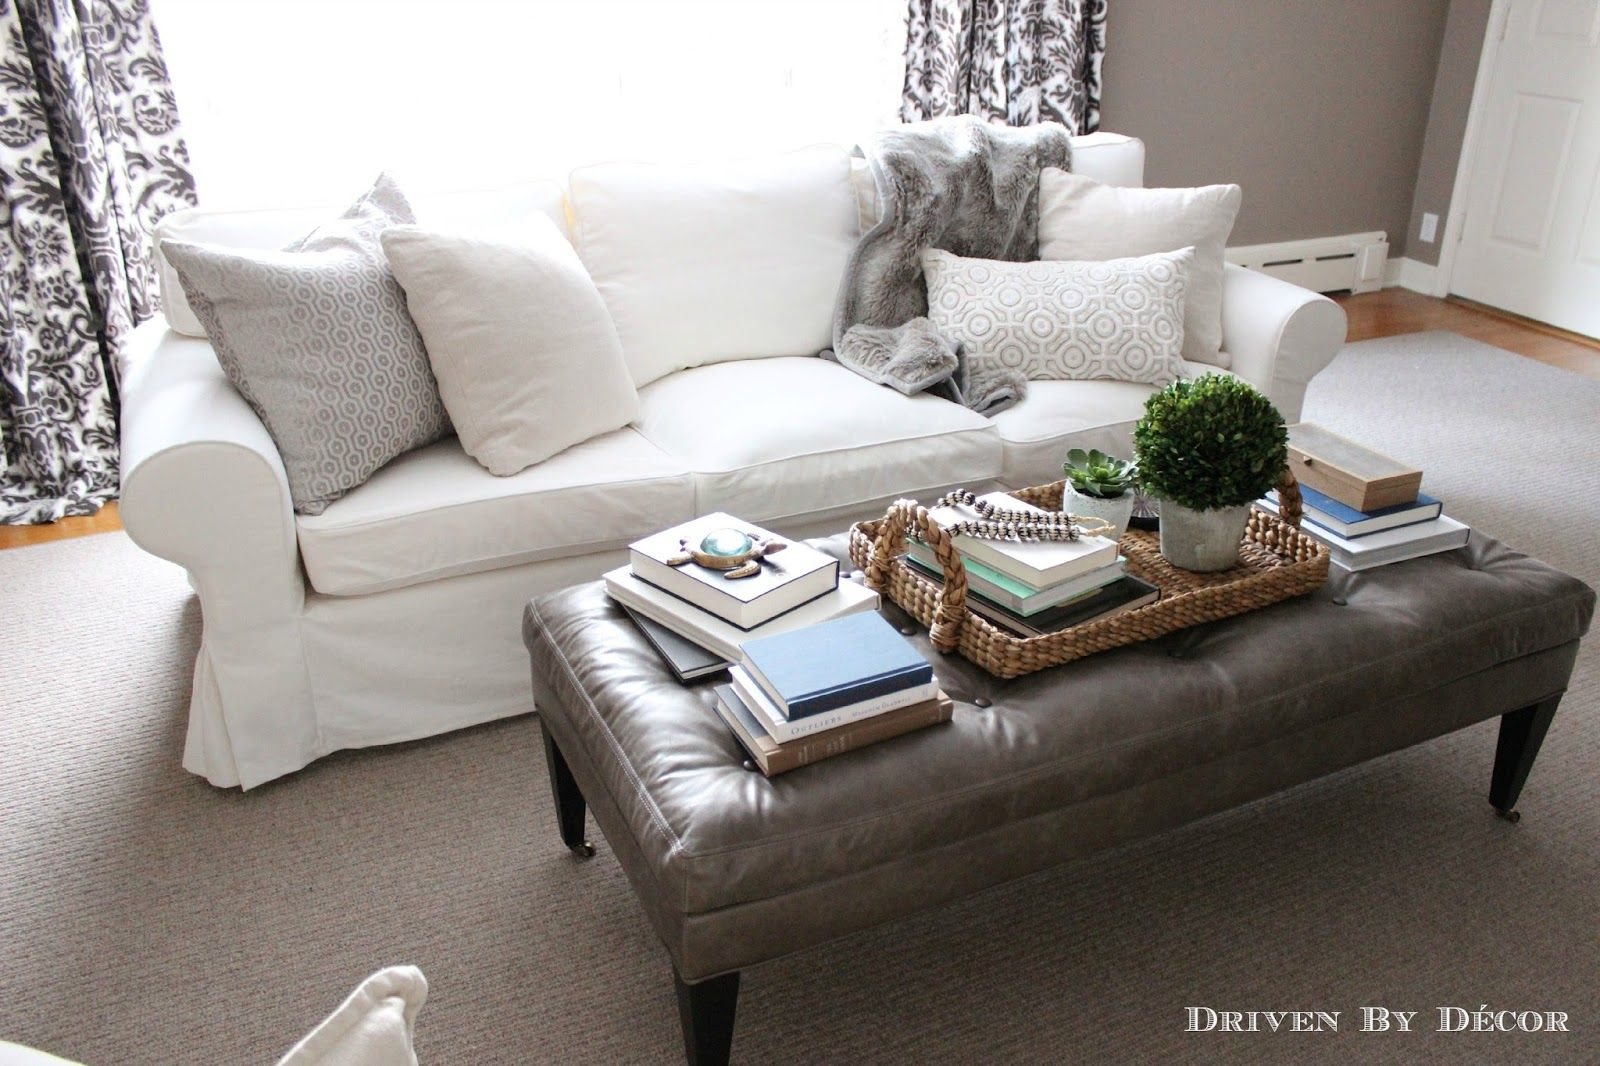 How we supersized our ikea ektorp sofa decorating it - How can we decorate our living room ...